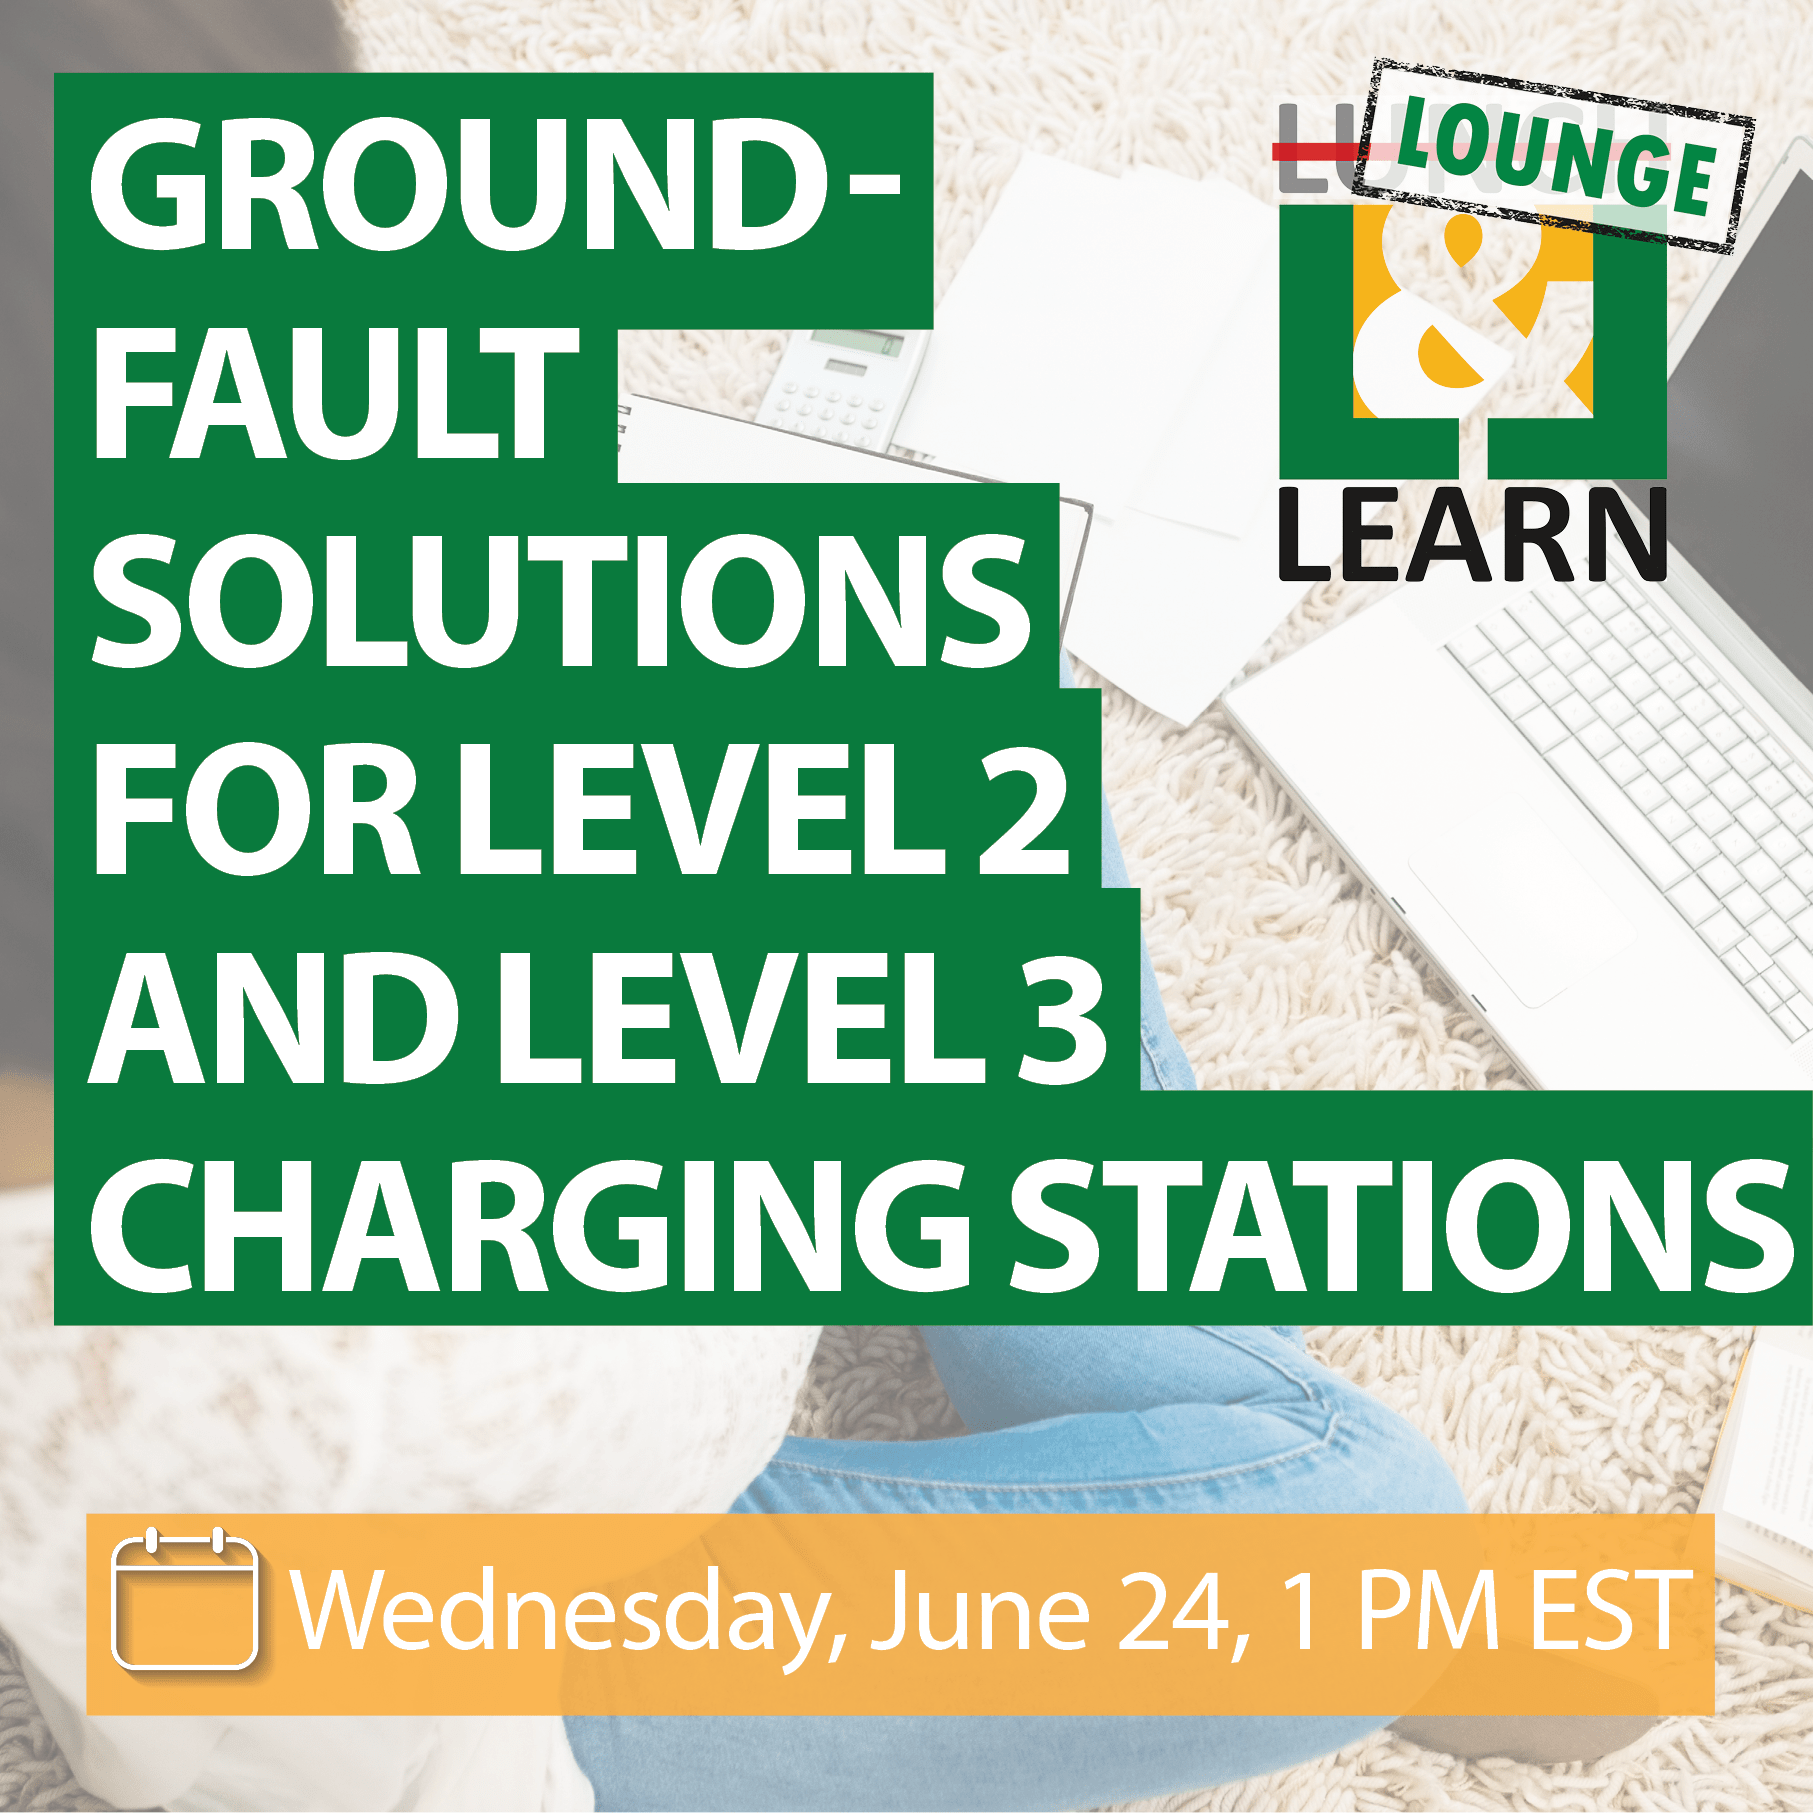 Lounge & Learn: Ground-Fault Solutions for Level 2 and Level 3 Charging Stations